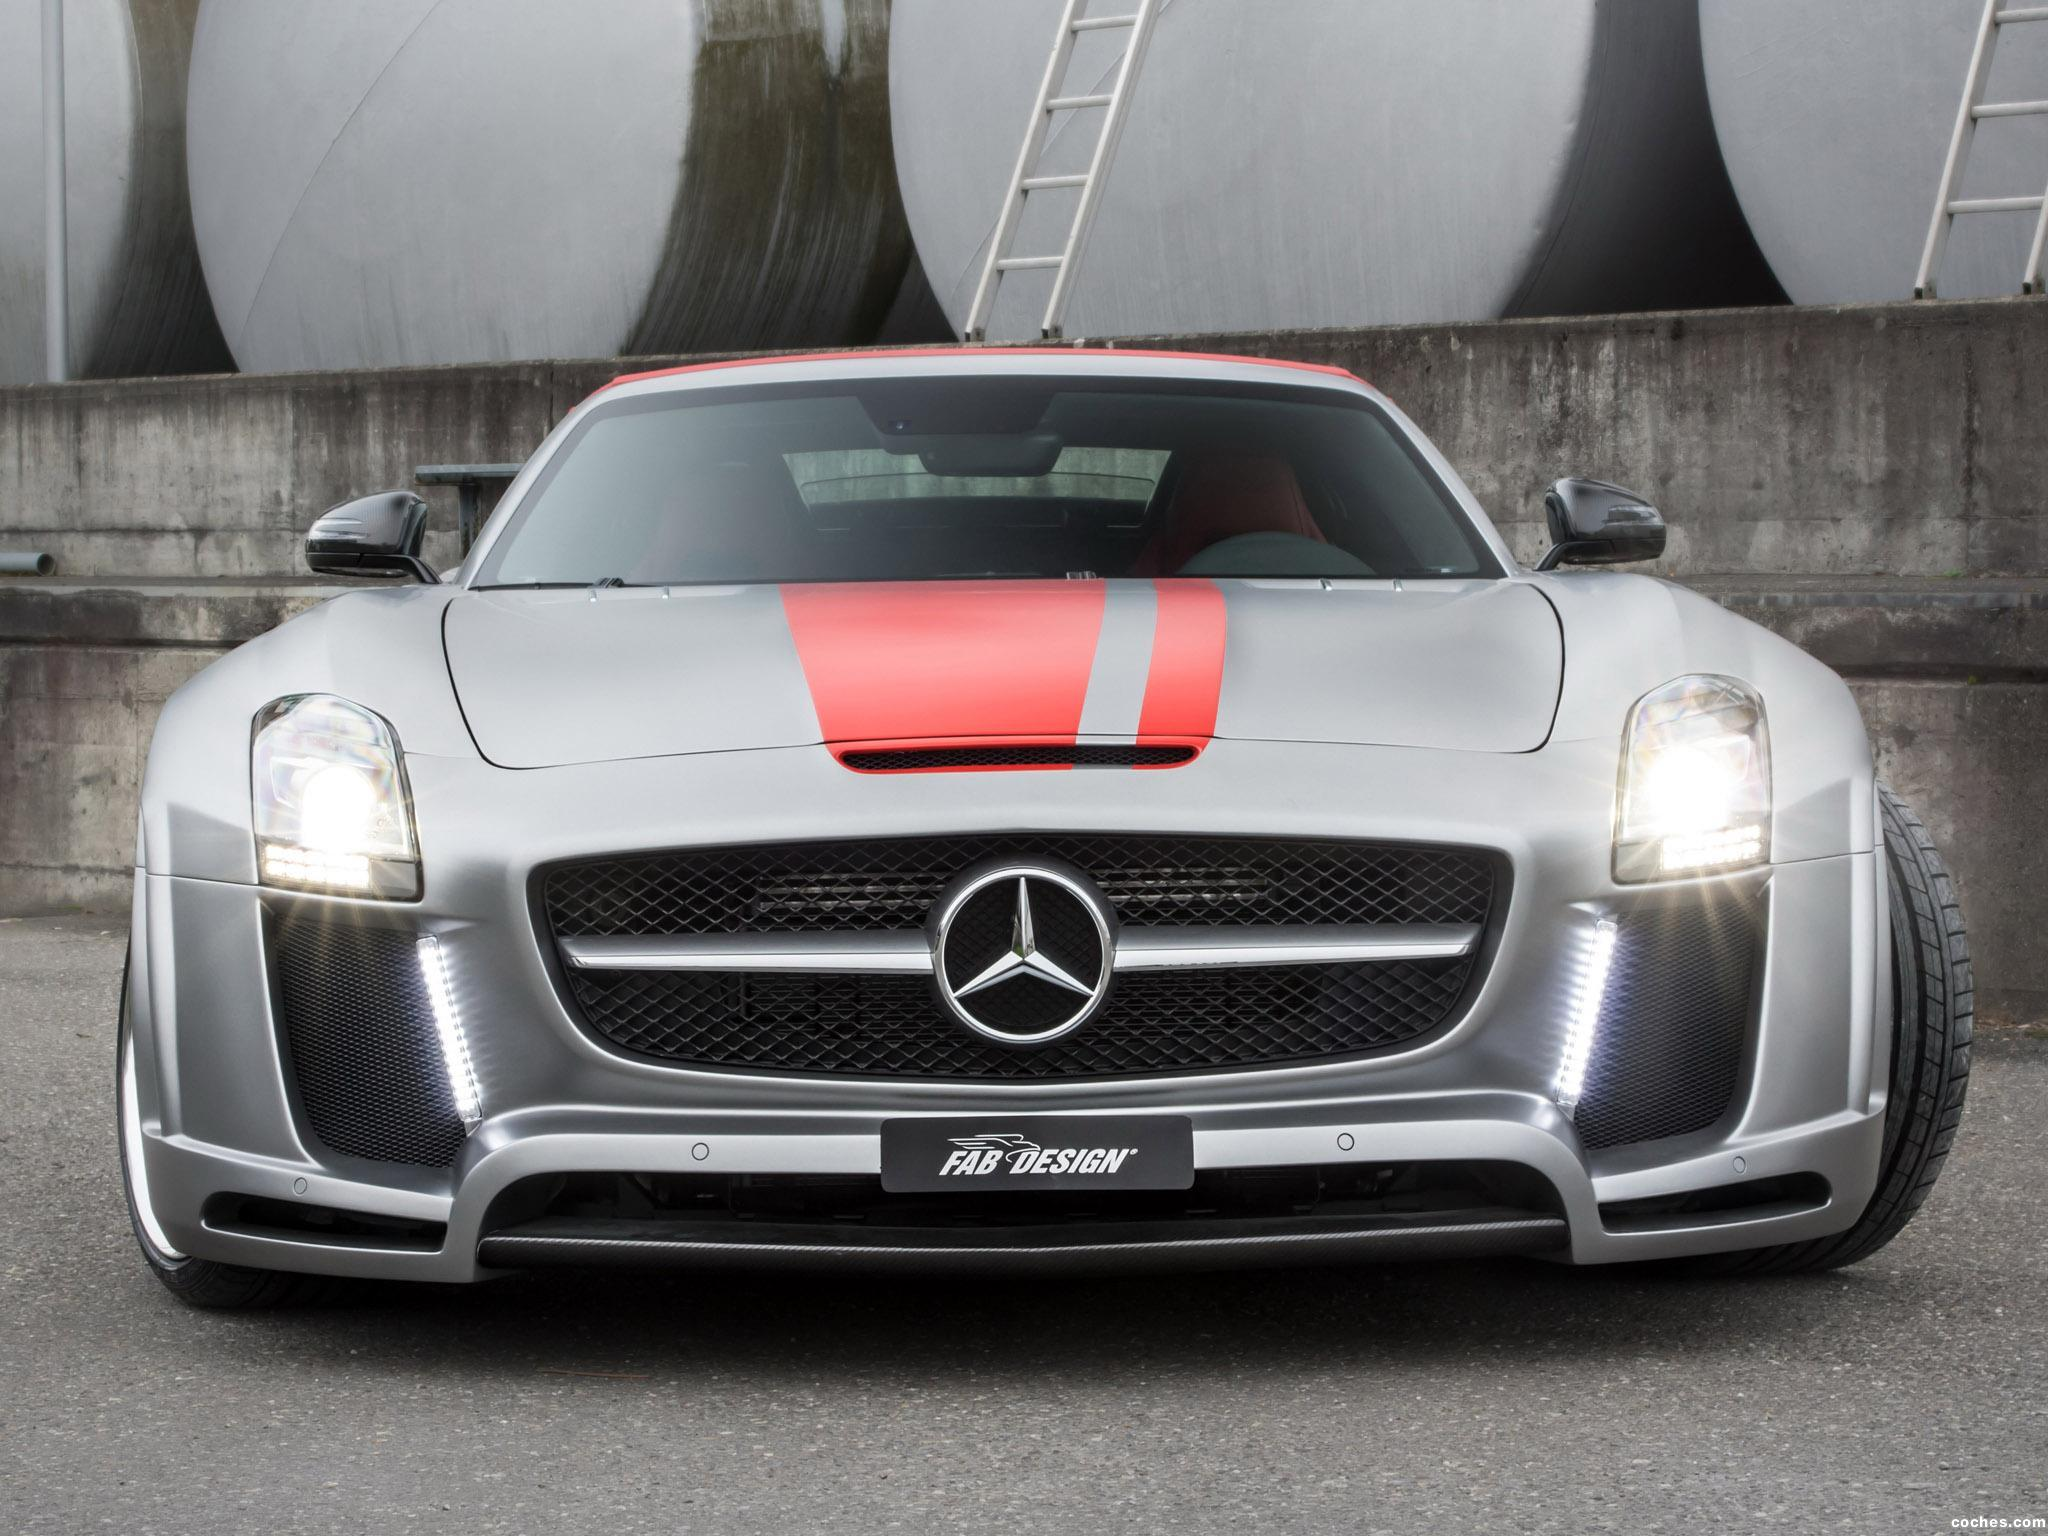 Foto 0 de FAB Design Mercedes SLS63 AMG Roadster Jetstream R197 2012